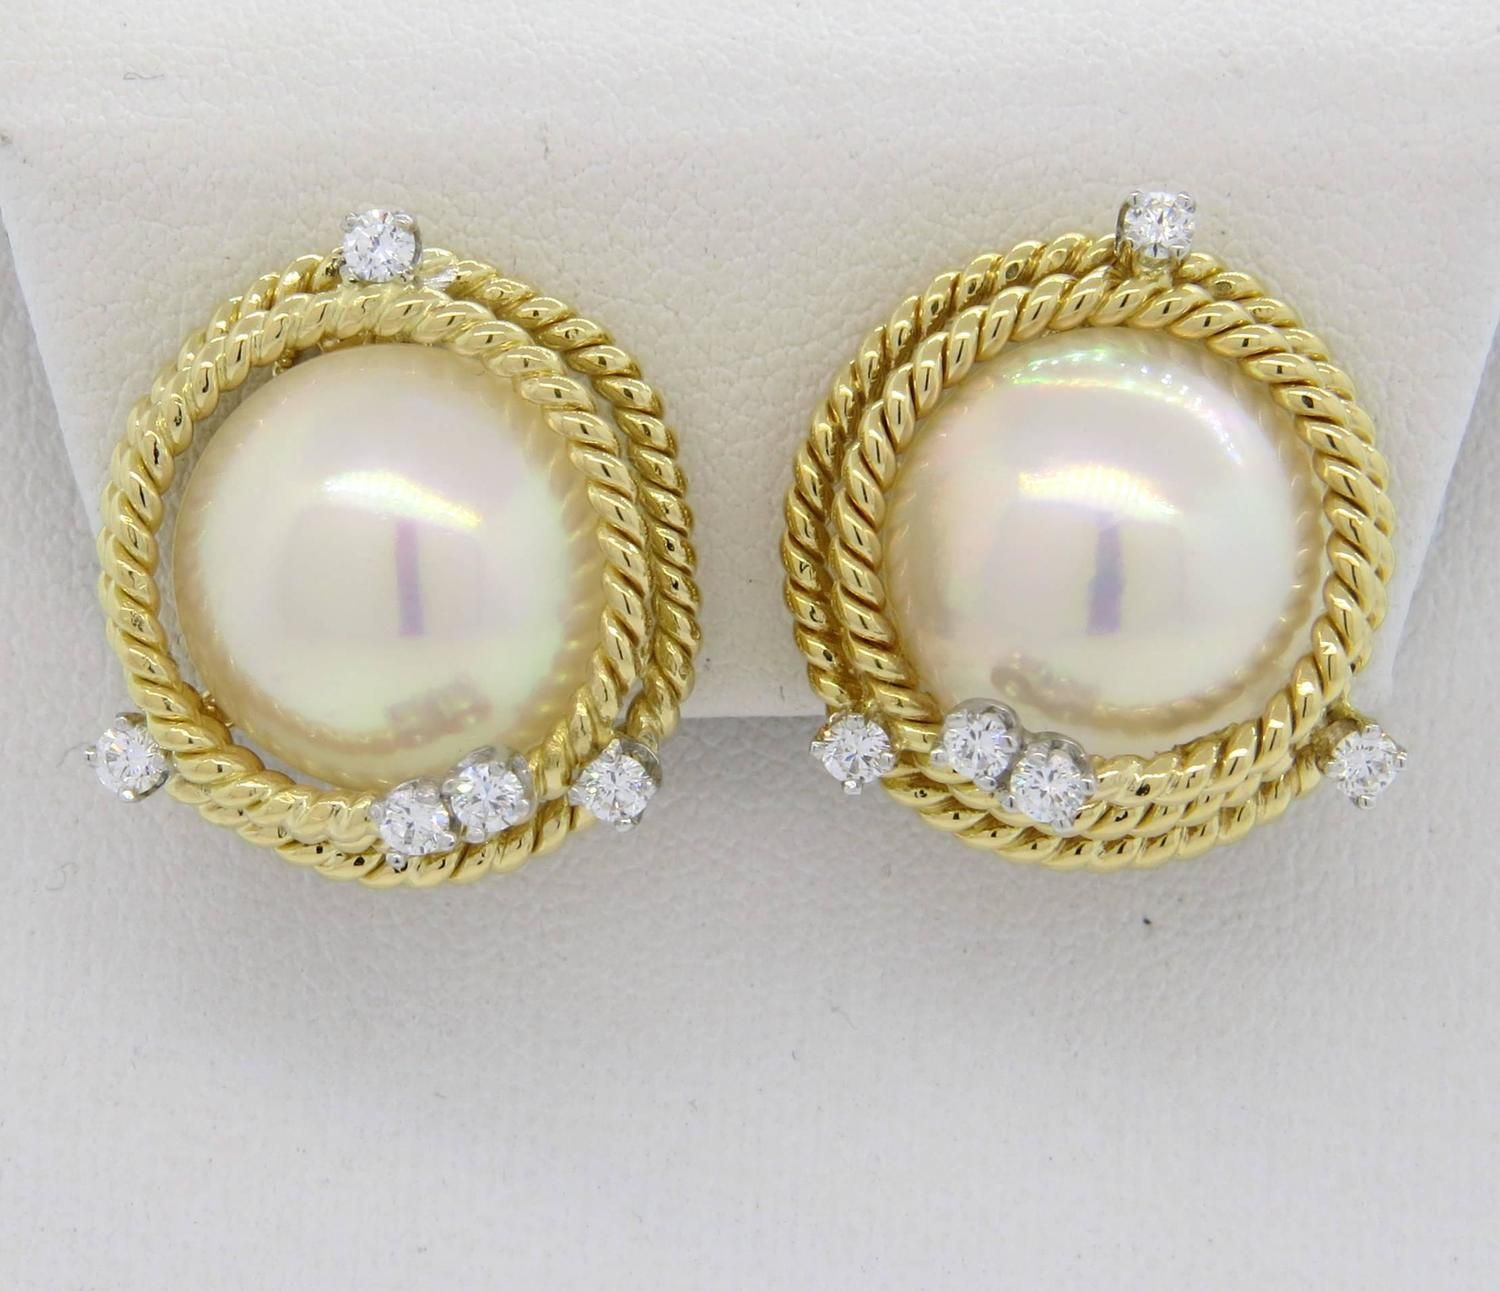 0bcf064d8 Tiffany & Co. Jean Schlumberger Pearl Diamond Gold Rope Earrings | From  a unique